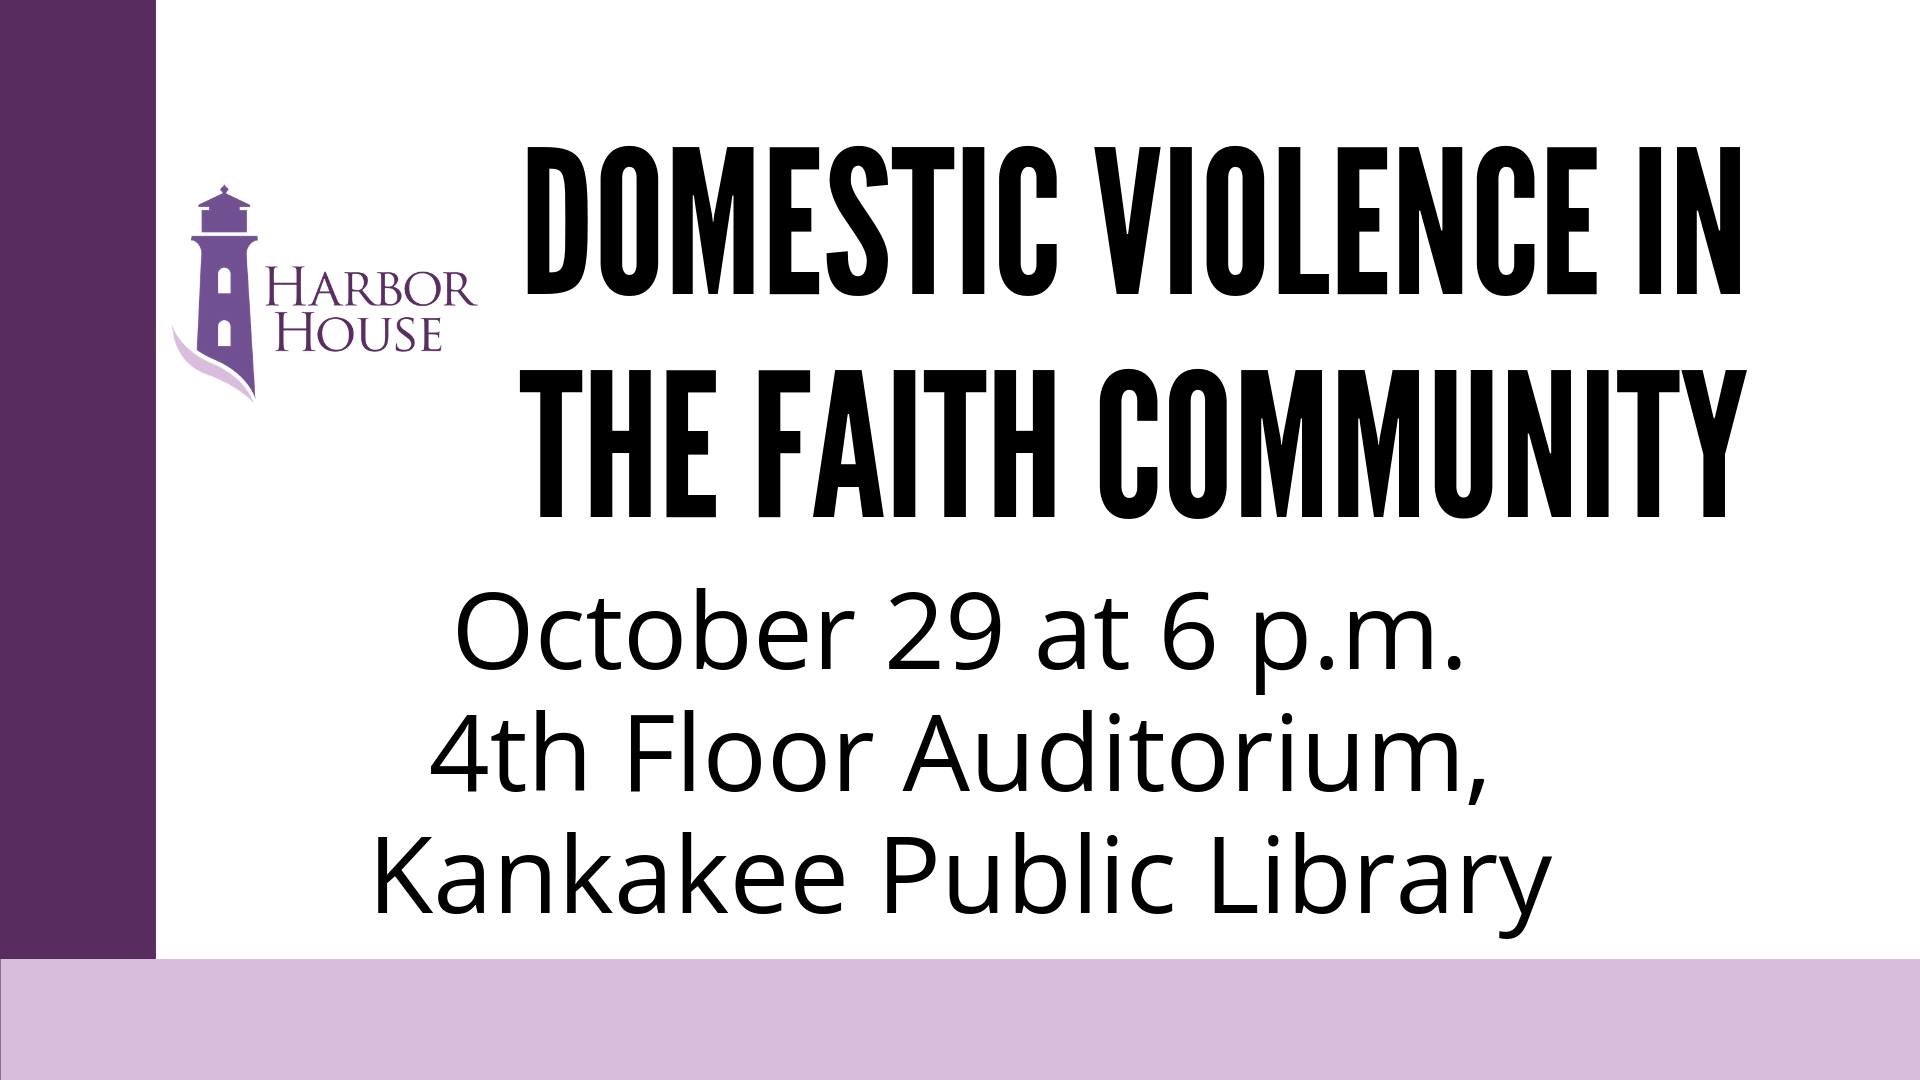 Harbor House Presents- Domestic Violence in the Faith Community